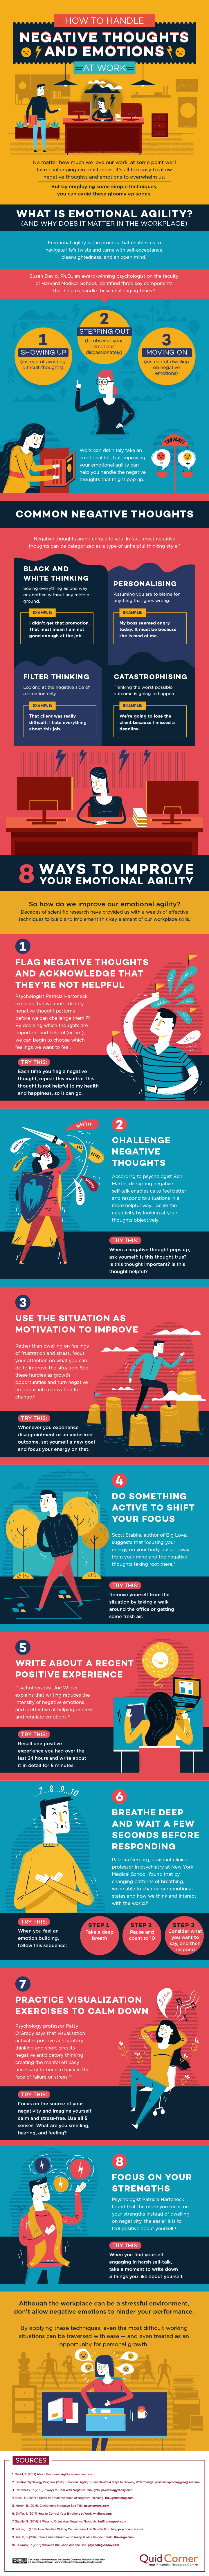 Managing Workplace Negative Thinking and Emotions - Infographic